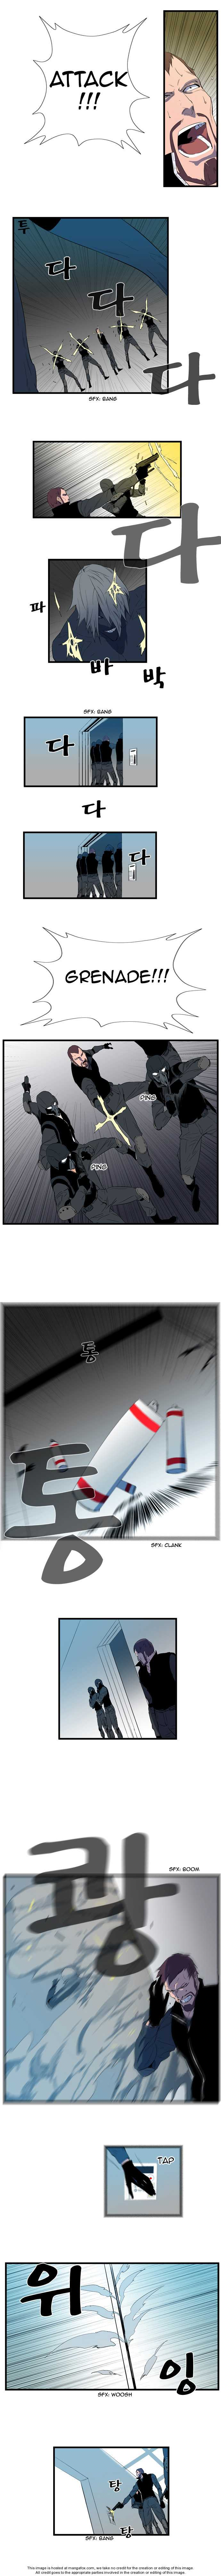 Noblesse 85 Page 3